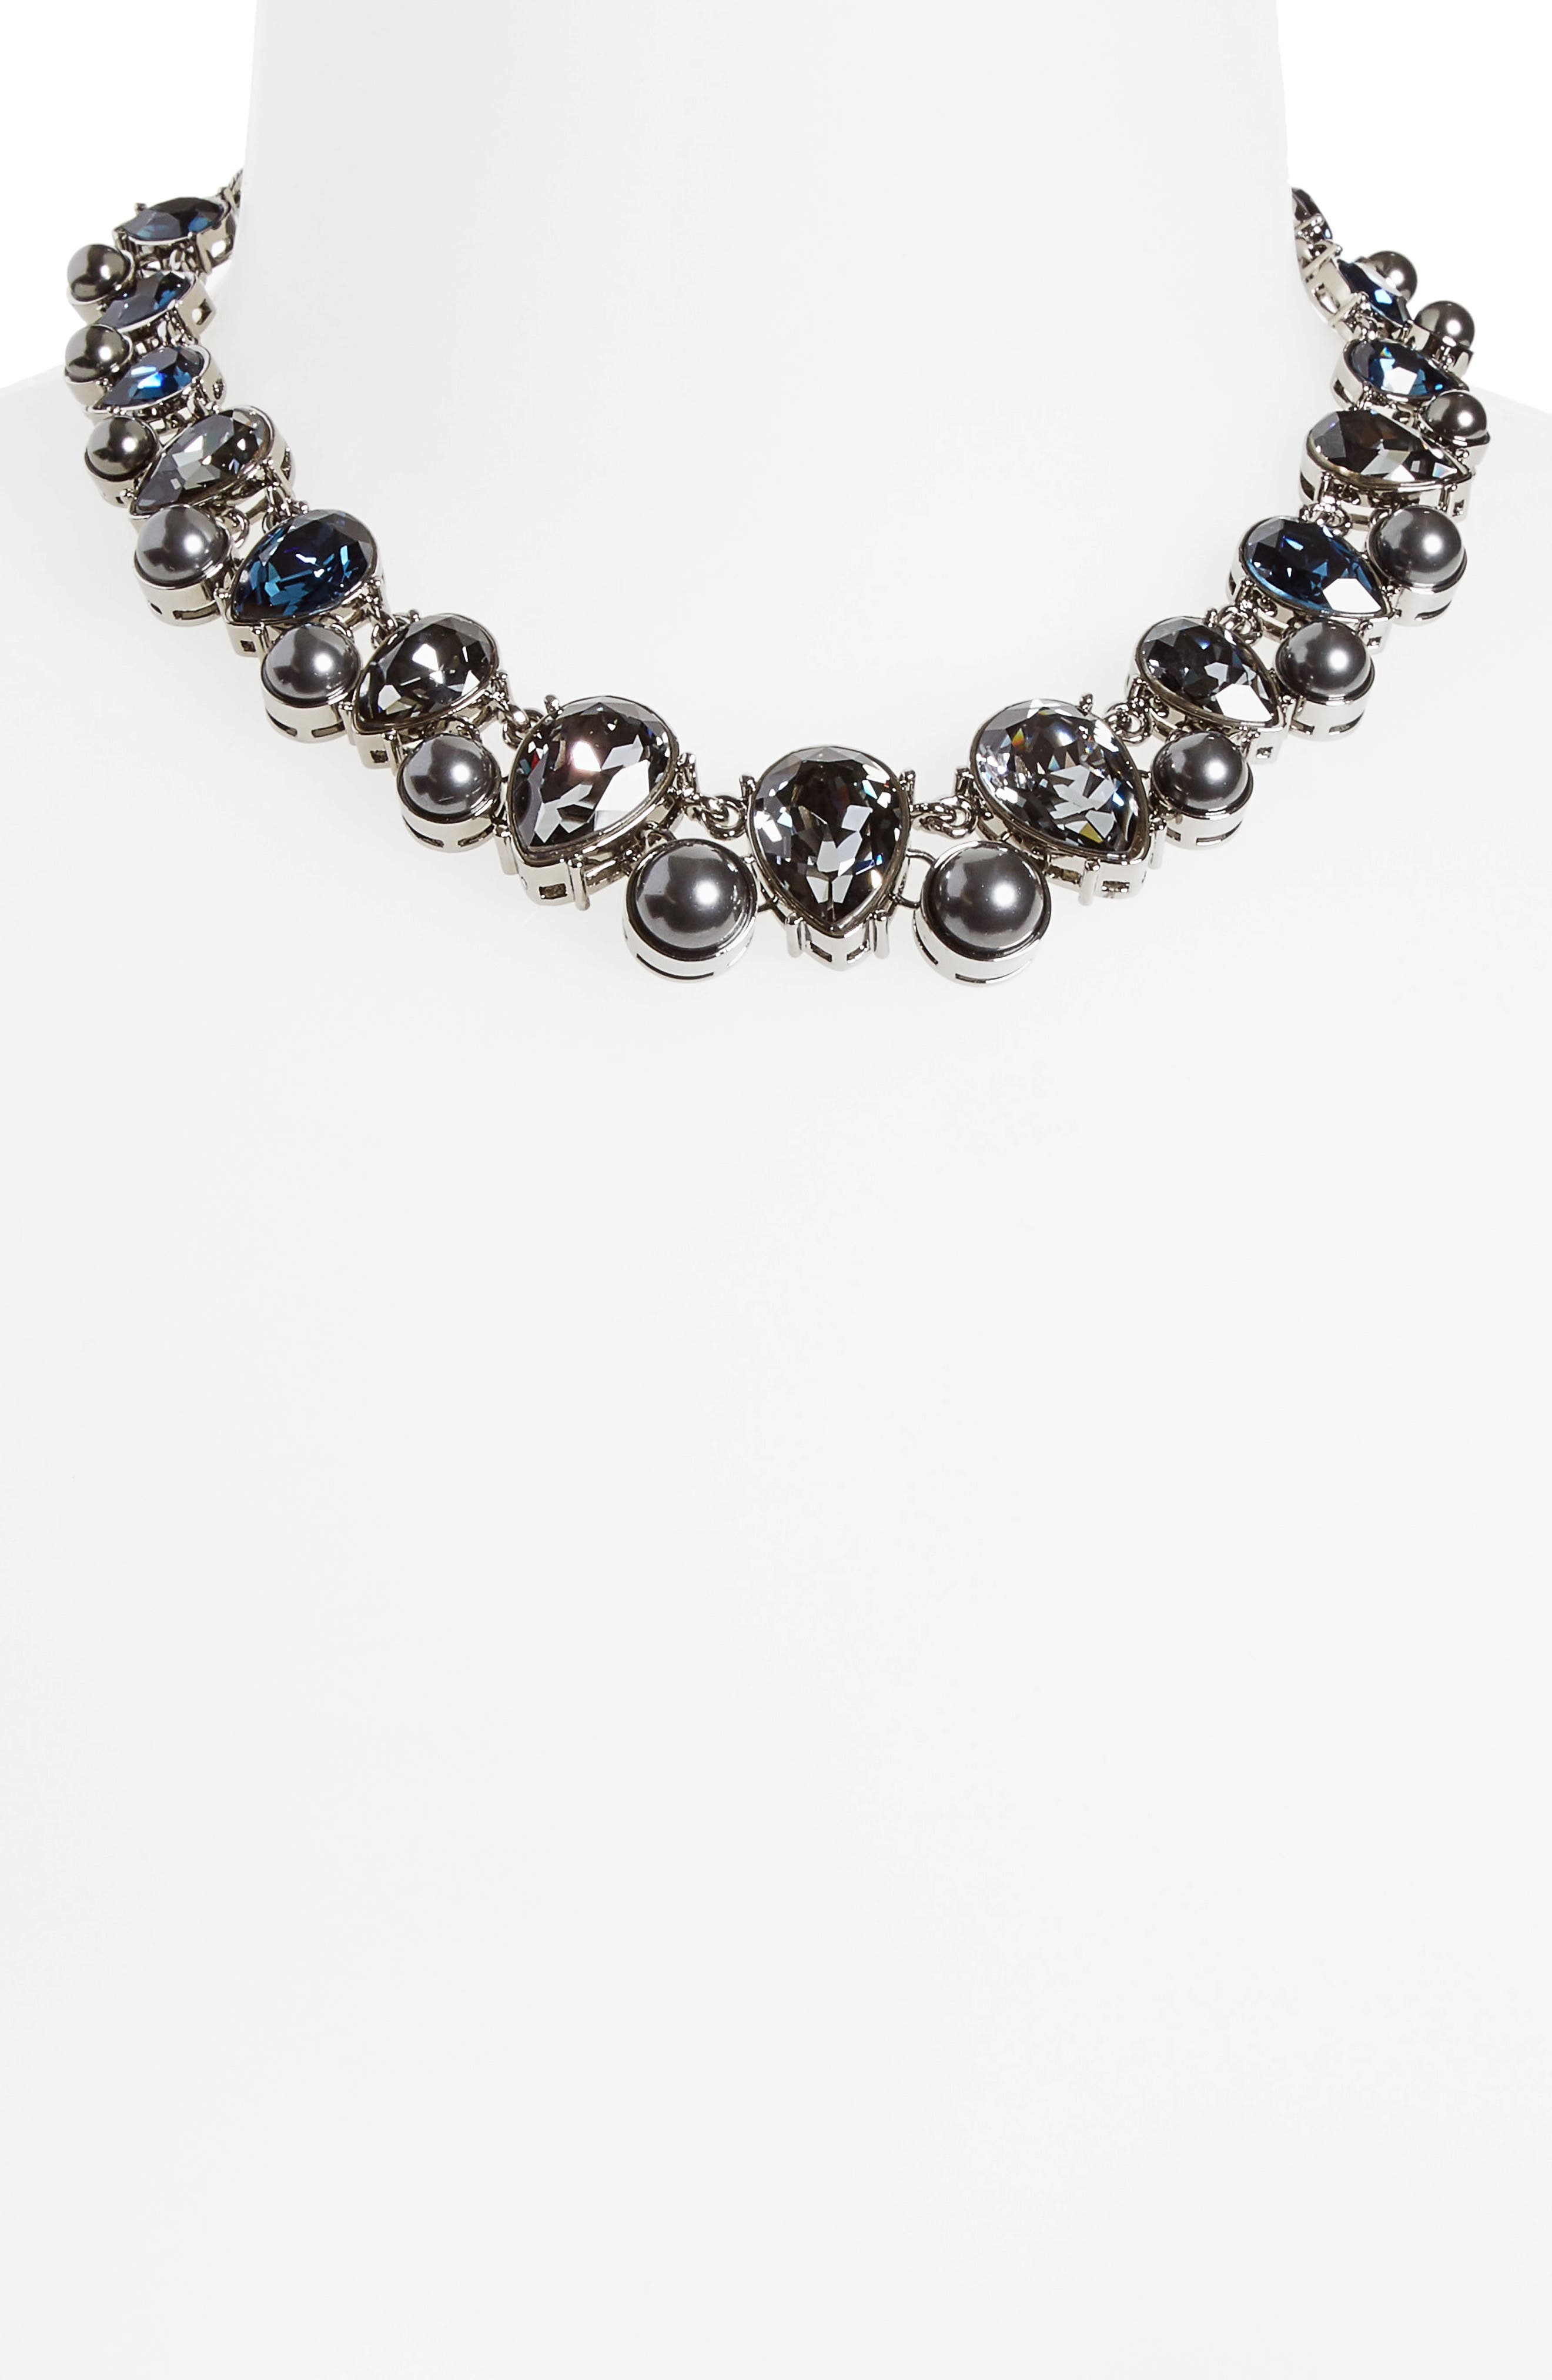 Swarovski Crystal & Imitation Pearl Necklace,                             Alternate thumbnail 2, color,